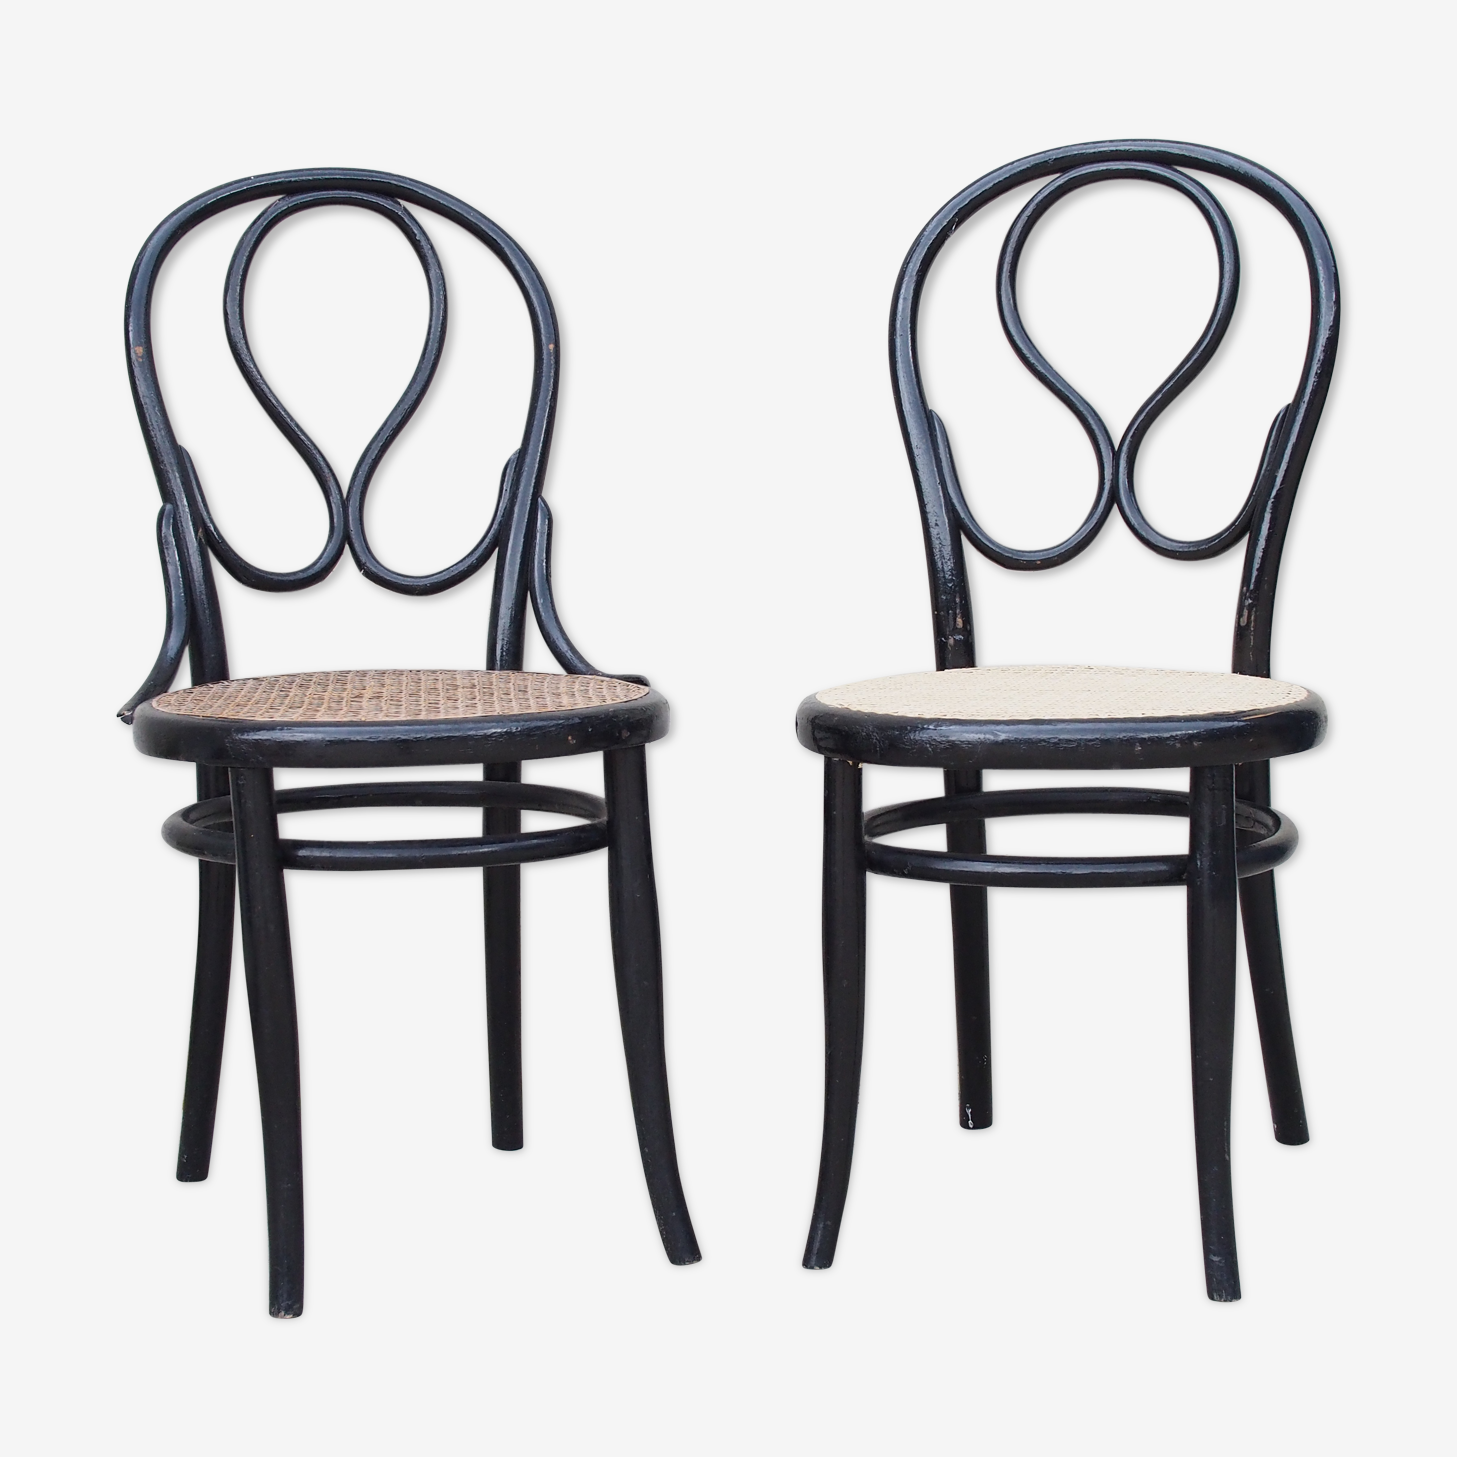 Chaises cannées Thonet Omega n°20